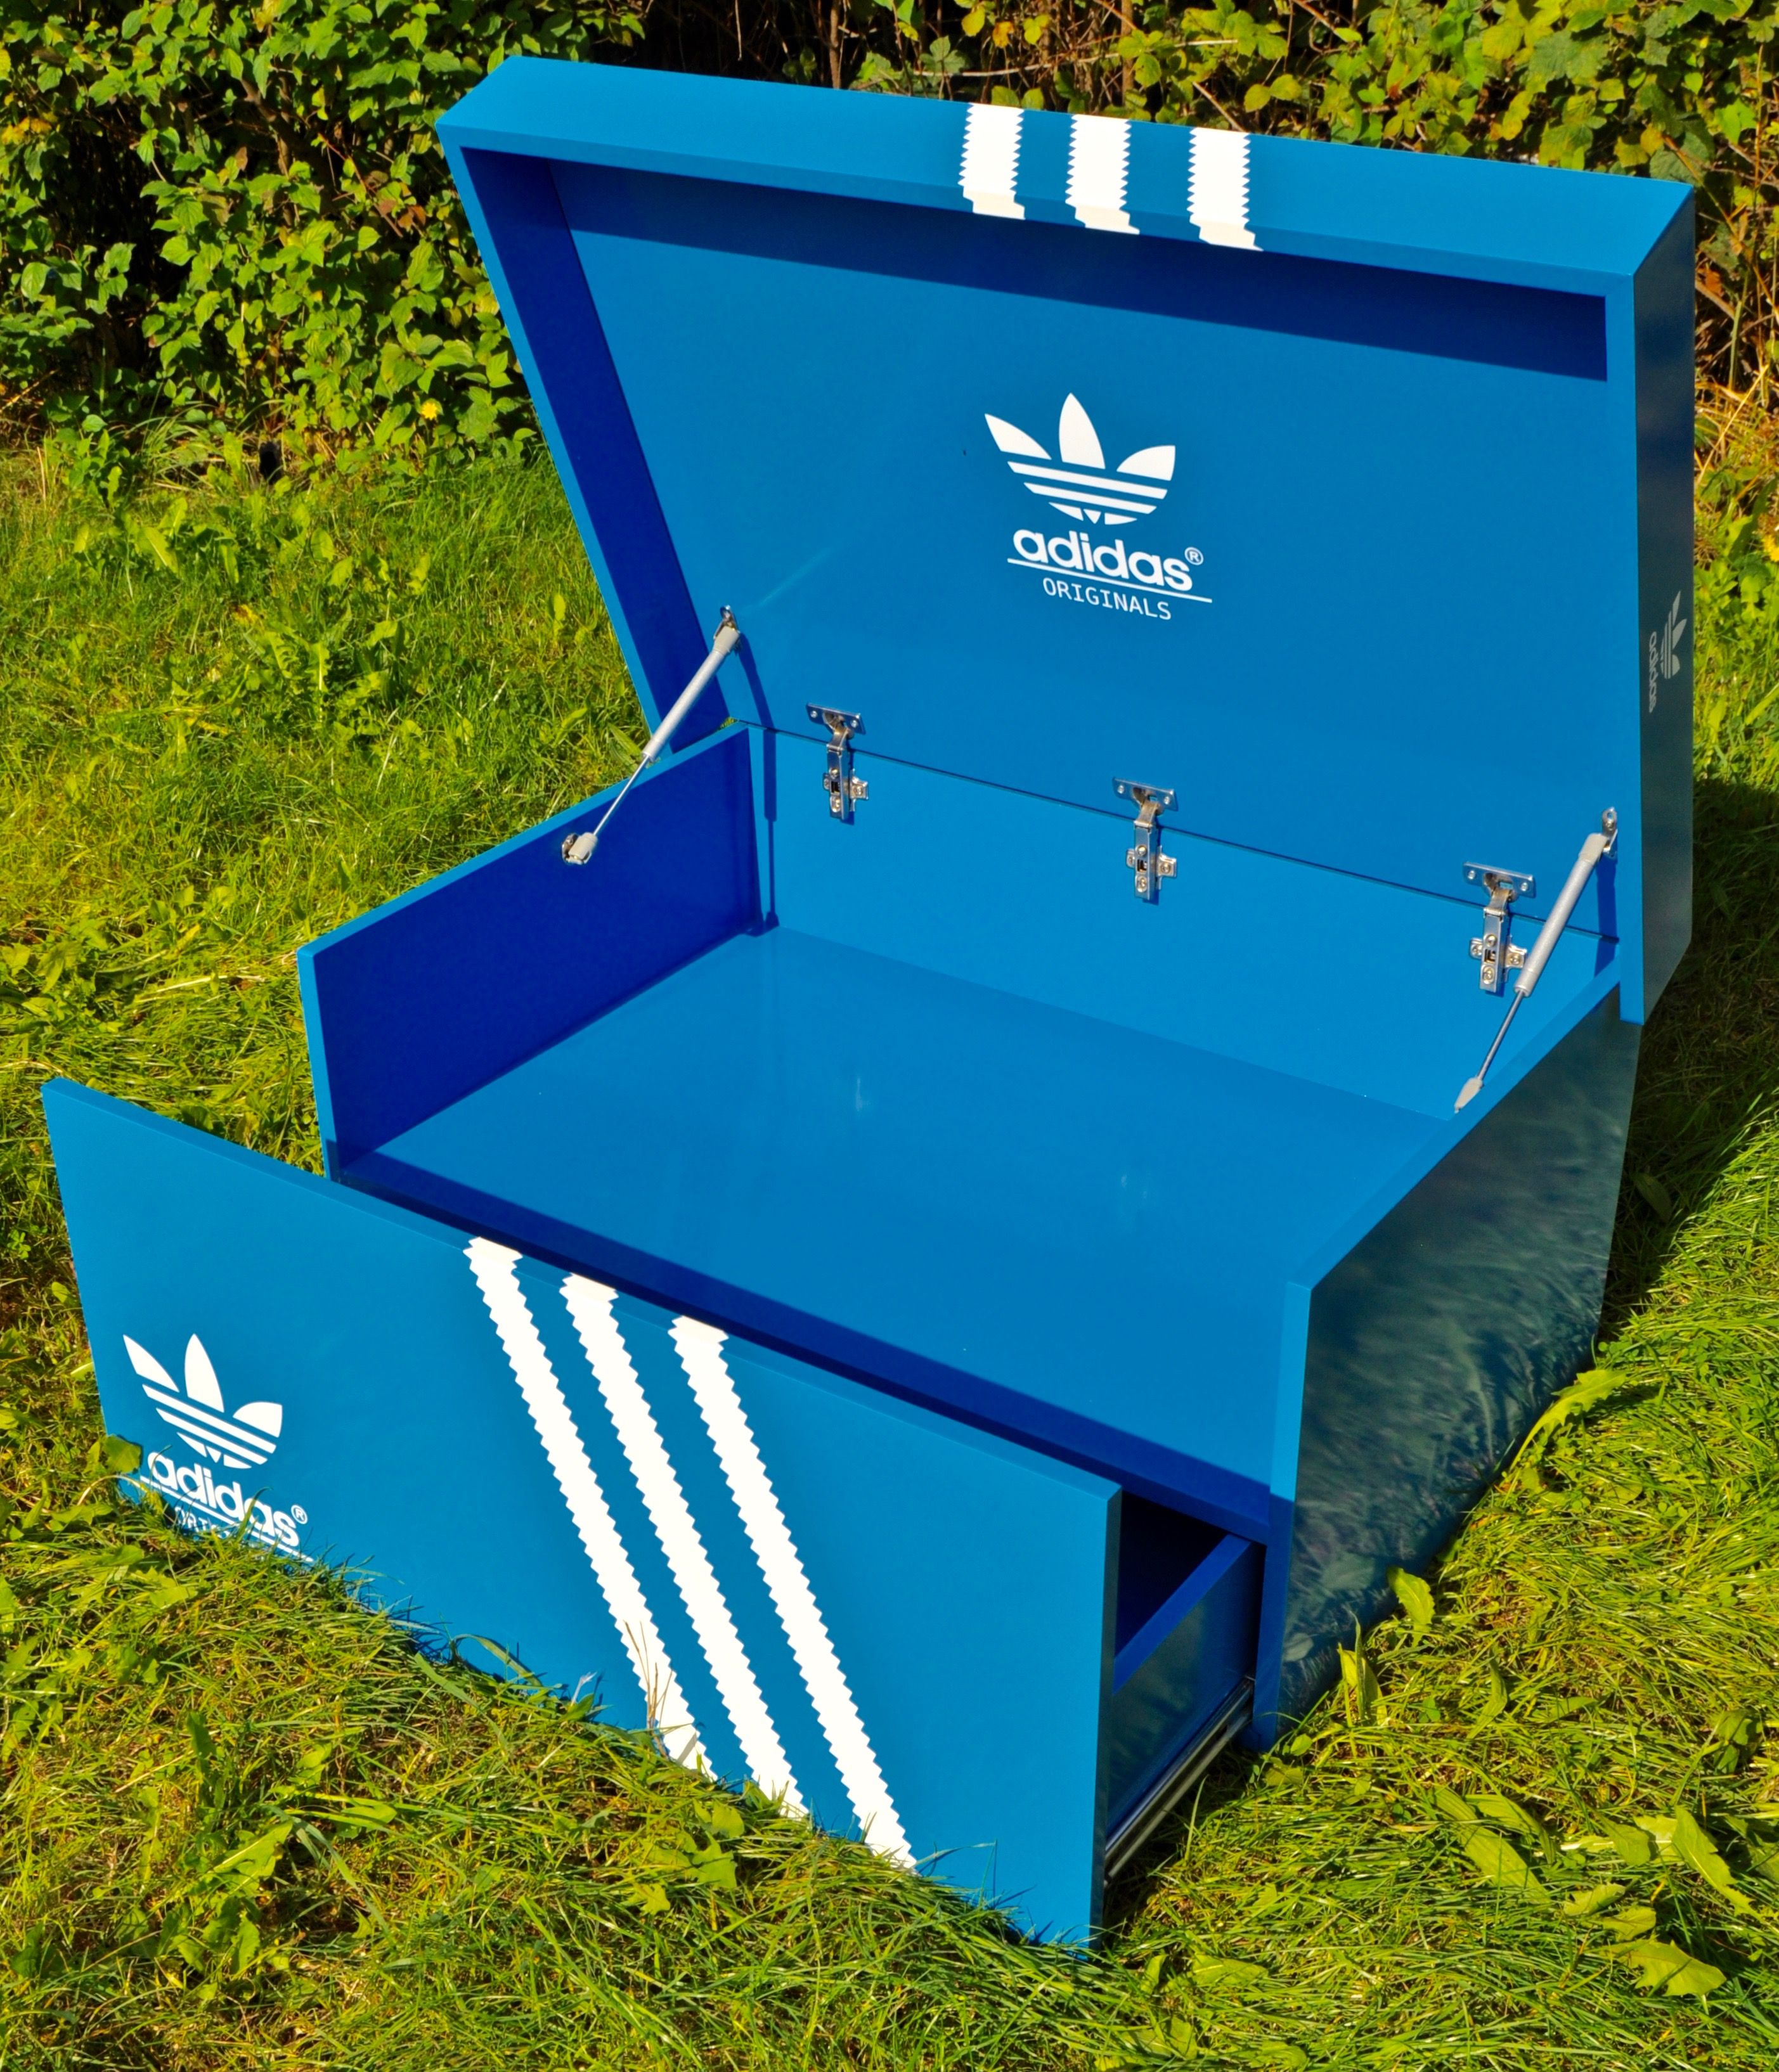 Giant Adidas Shoe Box Jams and Co Wood  packing & boxes in 2019